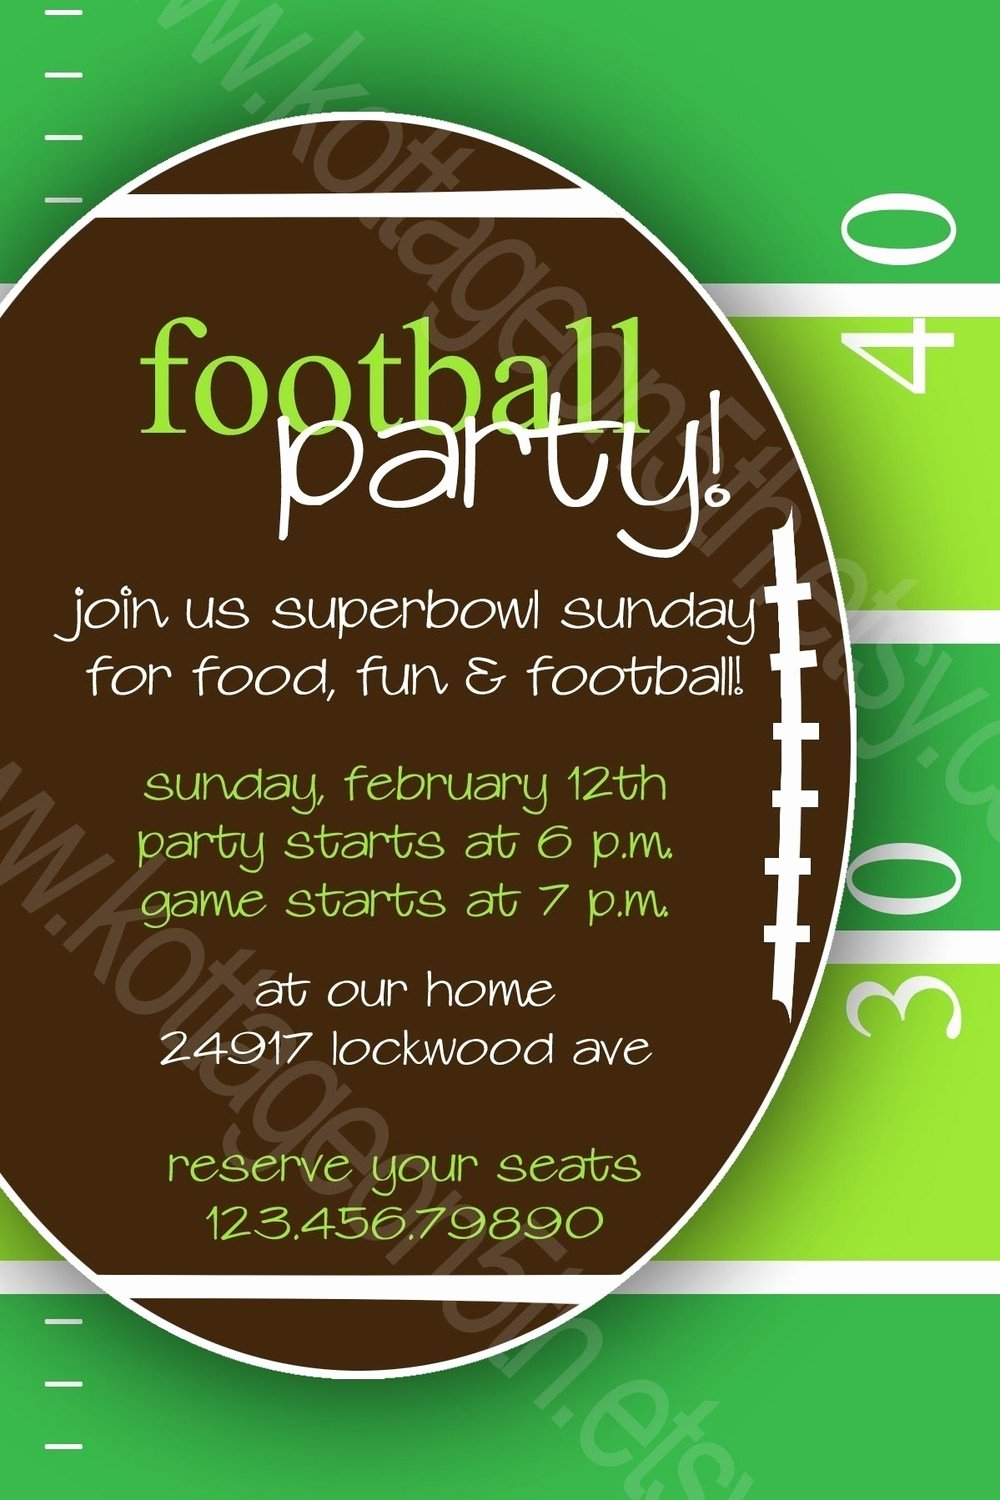 Superbowl Party Invitation Template Best Of Super Bowl Party Invitation Template